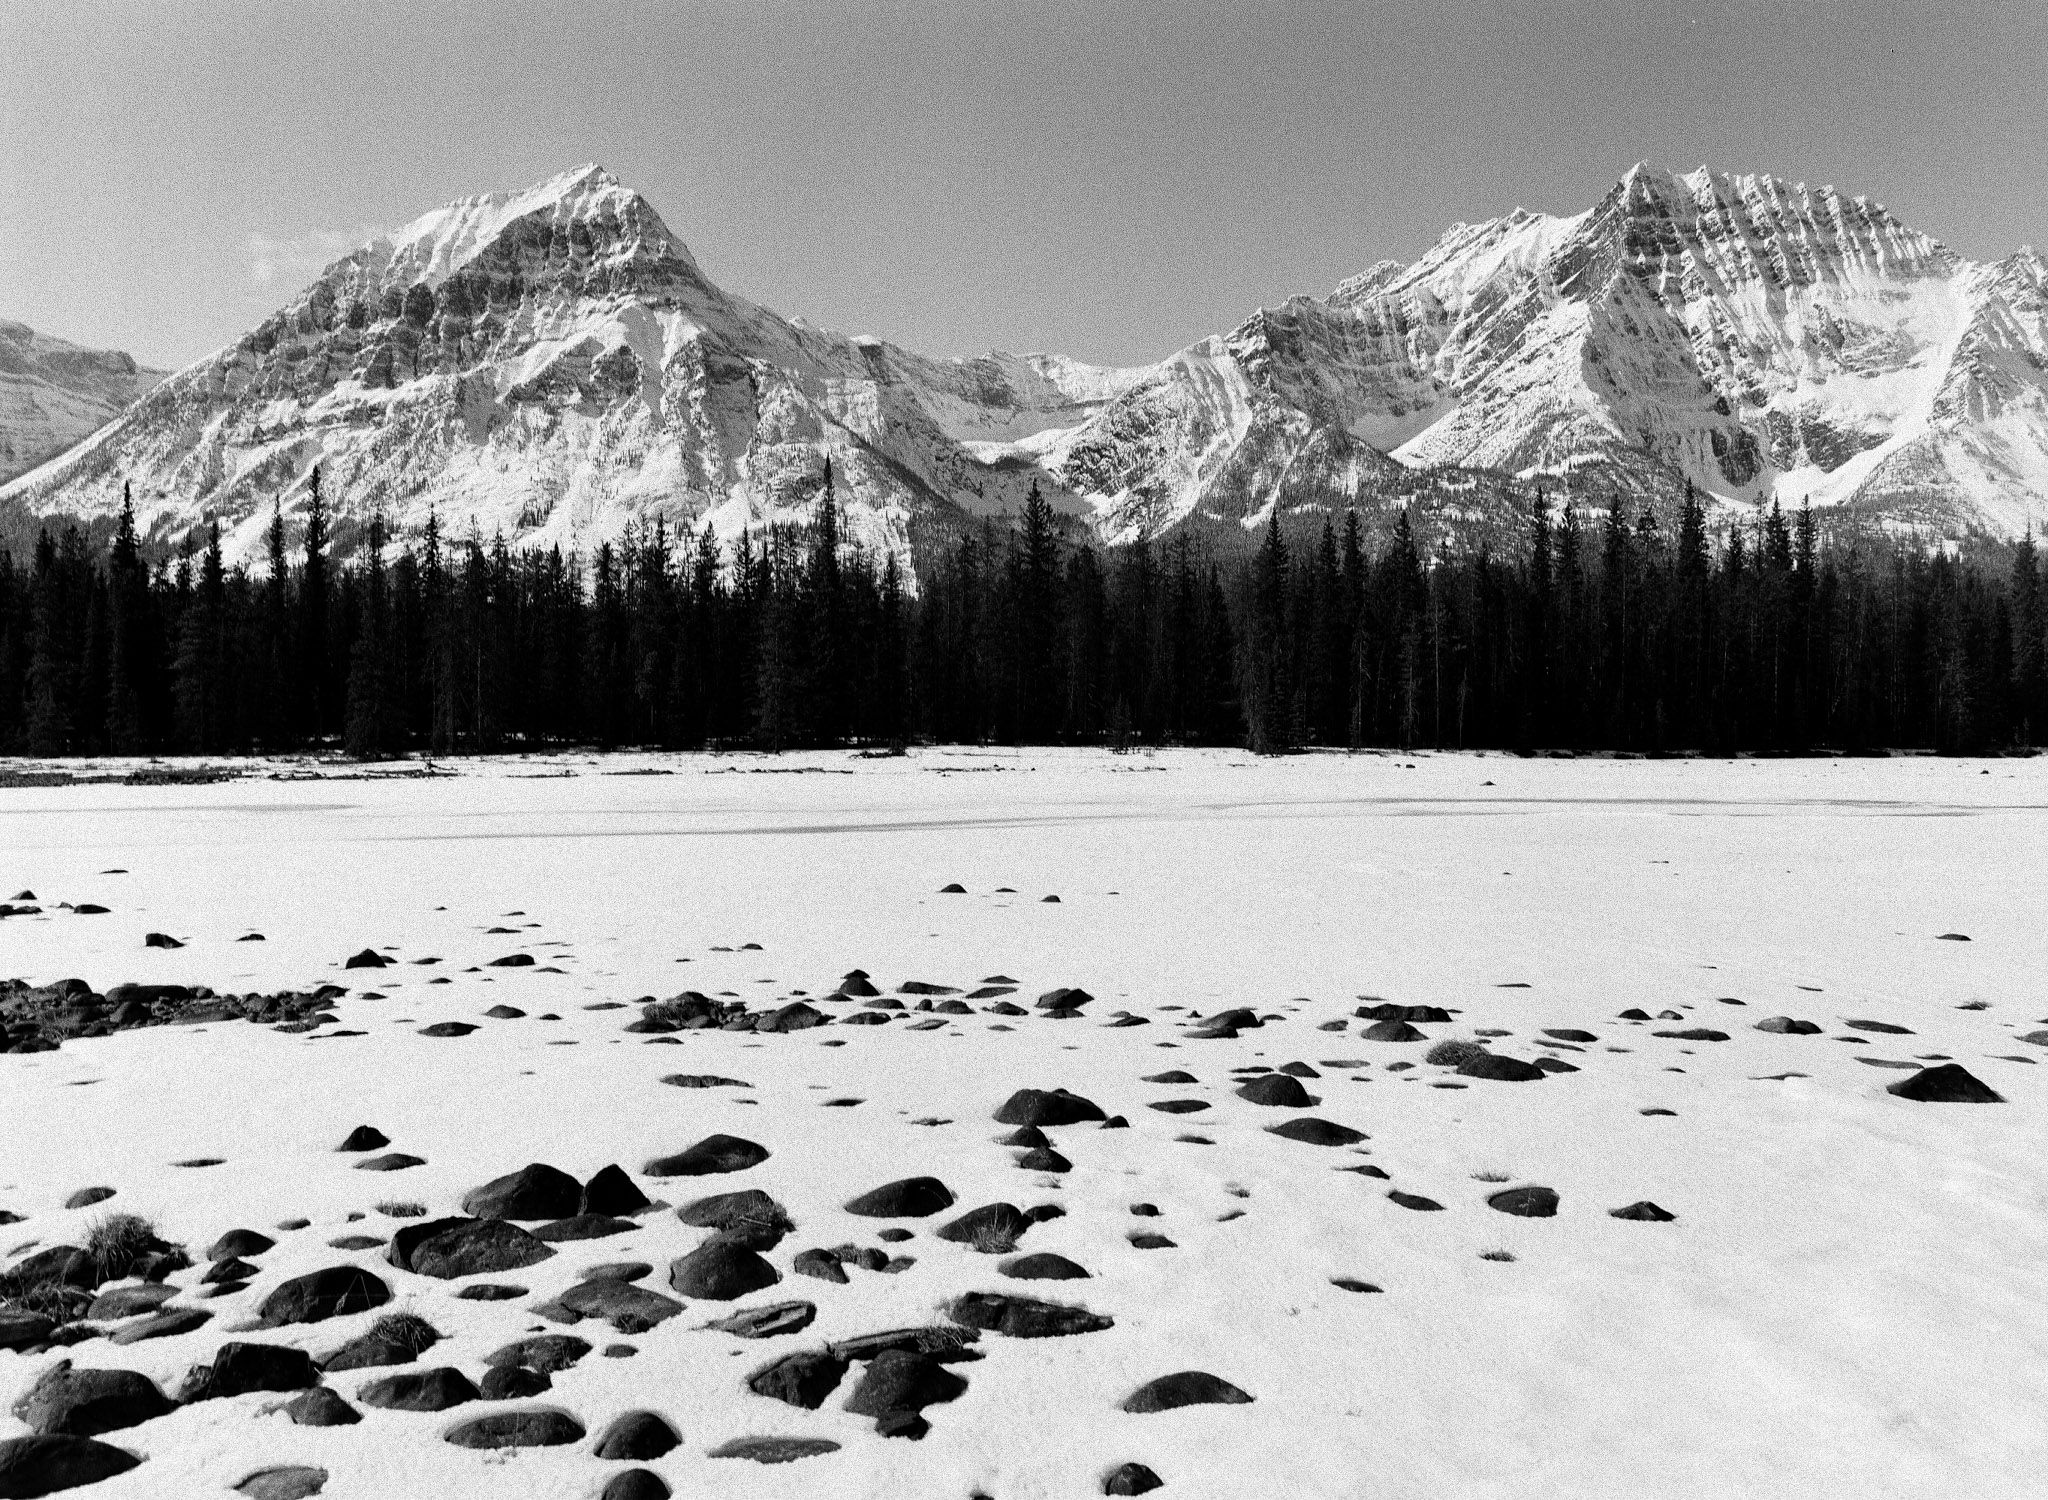 Along the frozen banks of the Athabasca River. // TMAX400